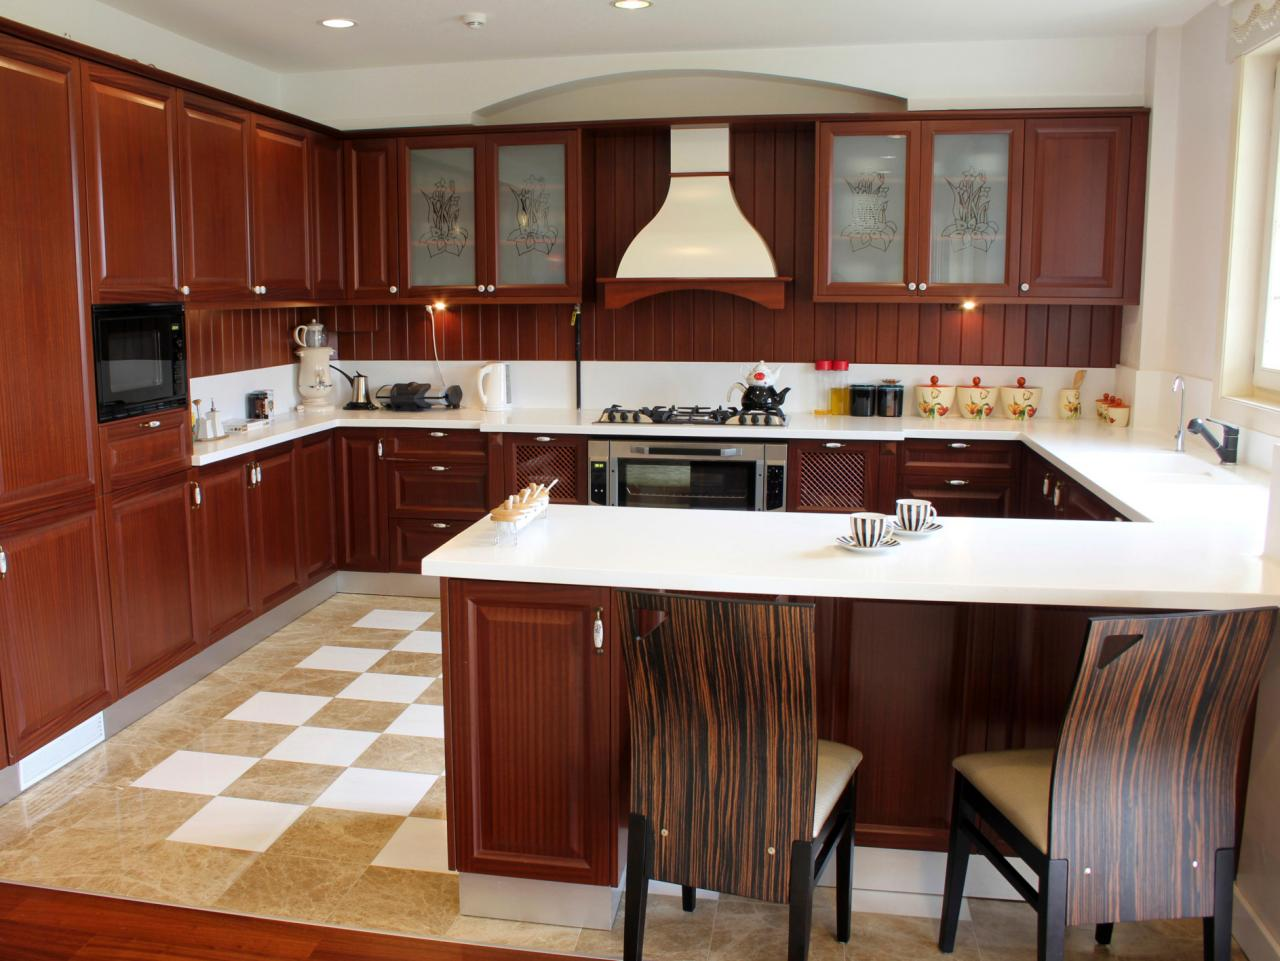 U shaped kitchens hgtv for Redesign kitchen layout